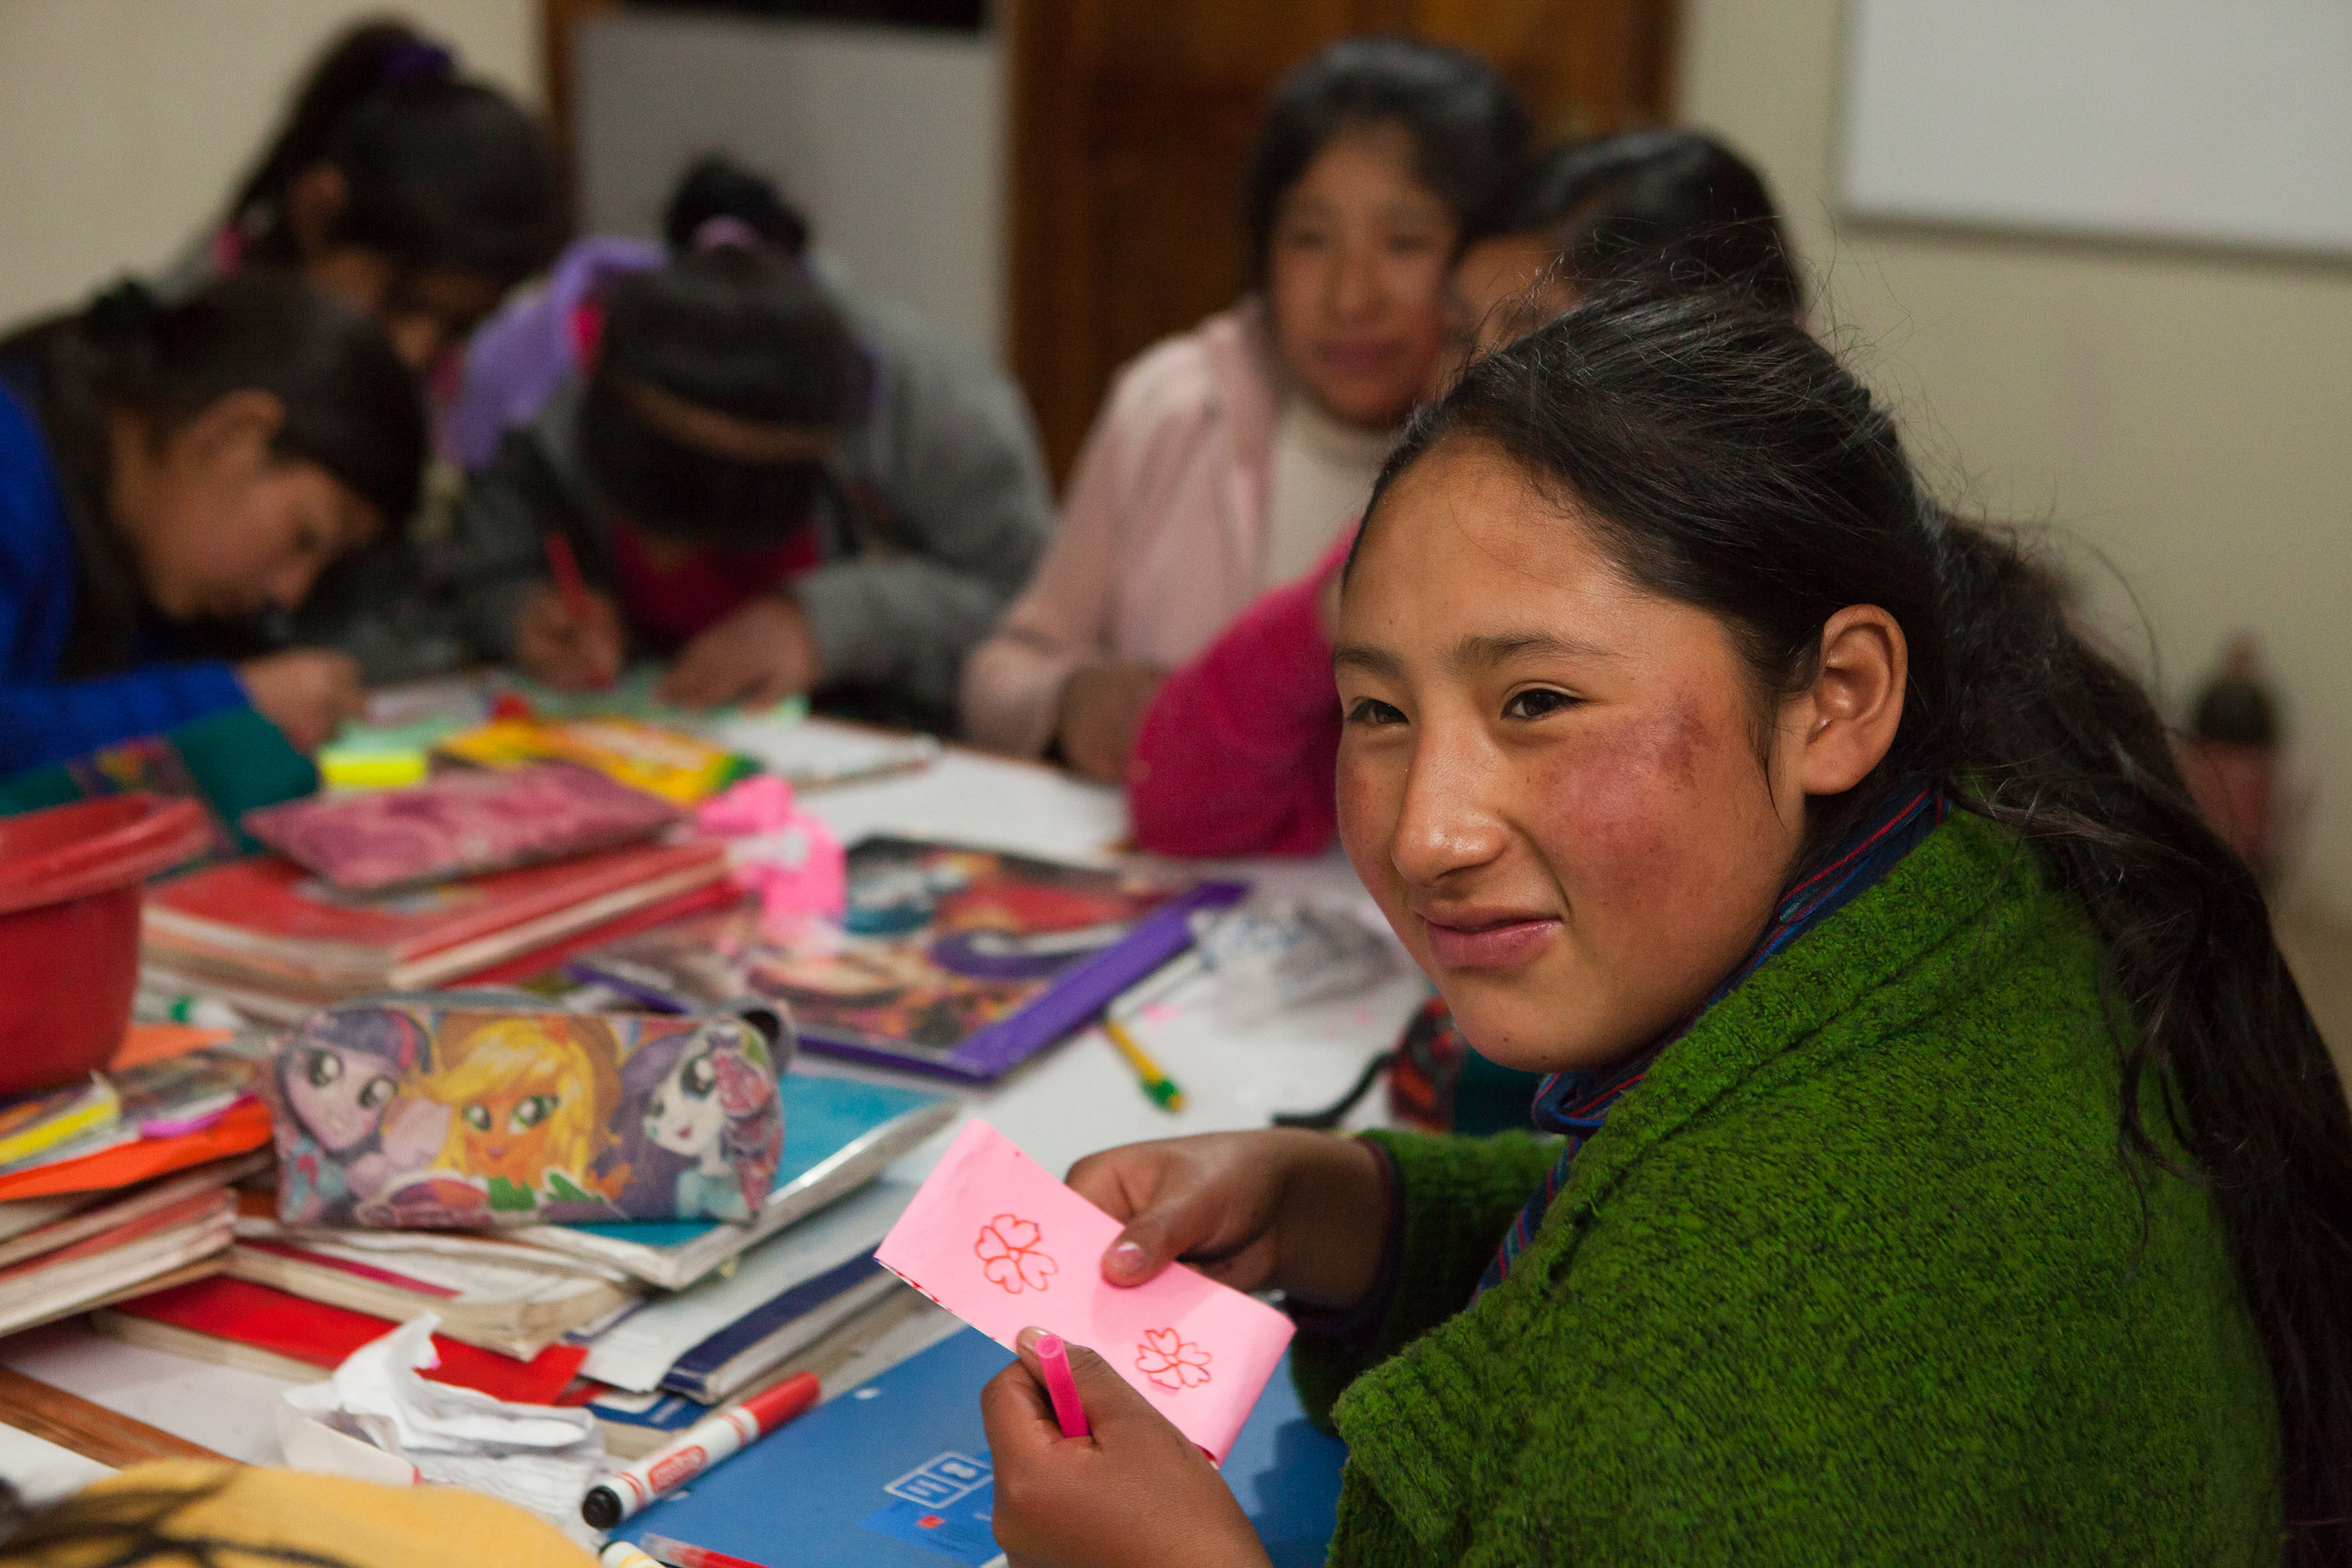 Peruvian She's the First Scholar Sinforosa makes cards for STF Scholars in Guatemala!